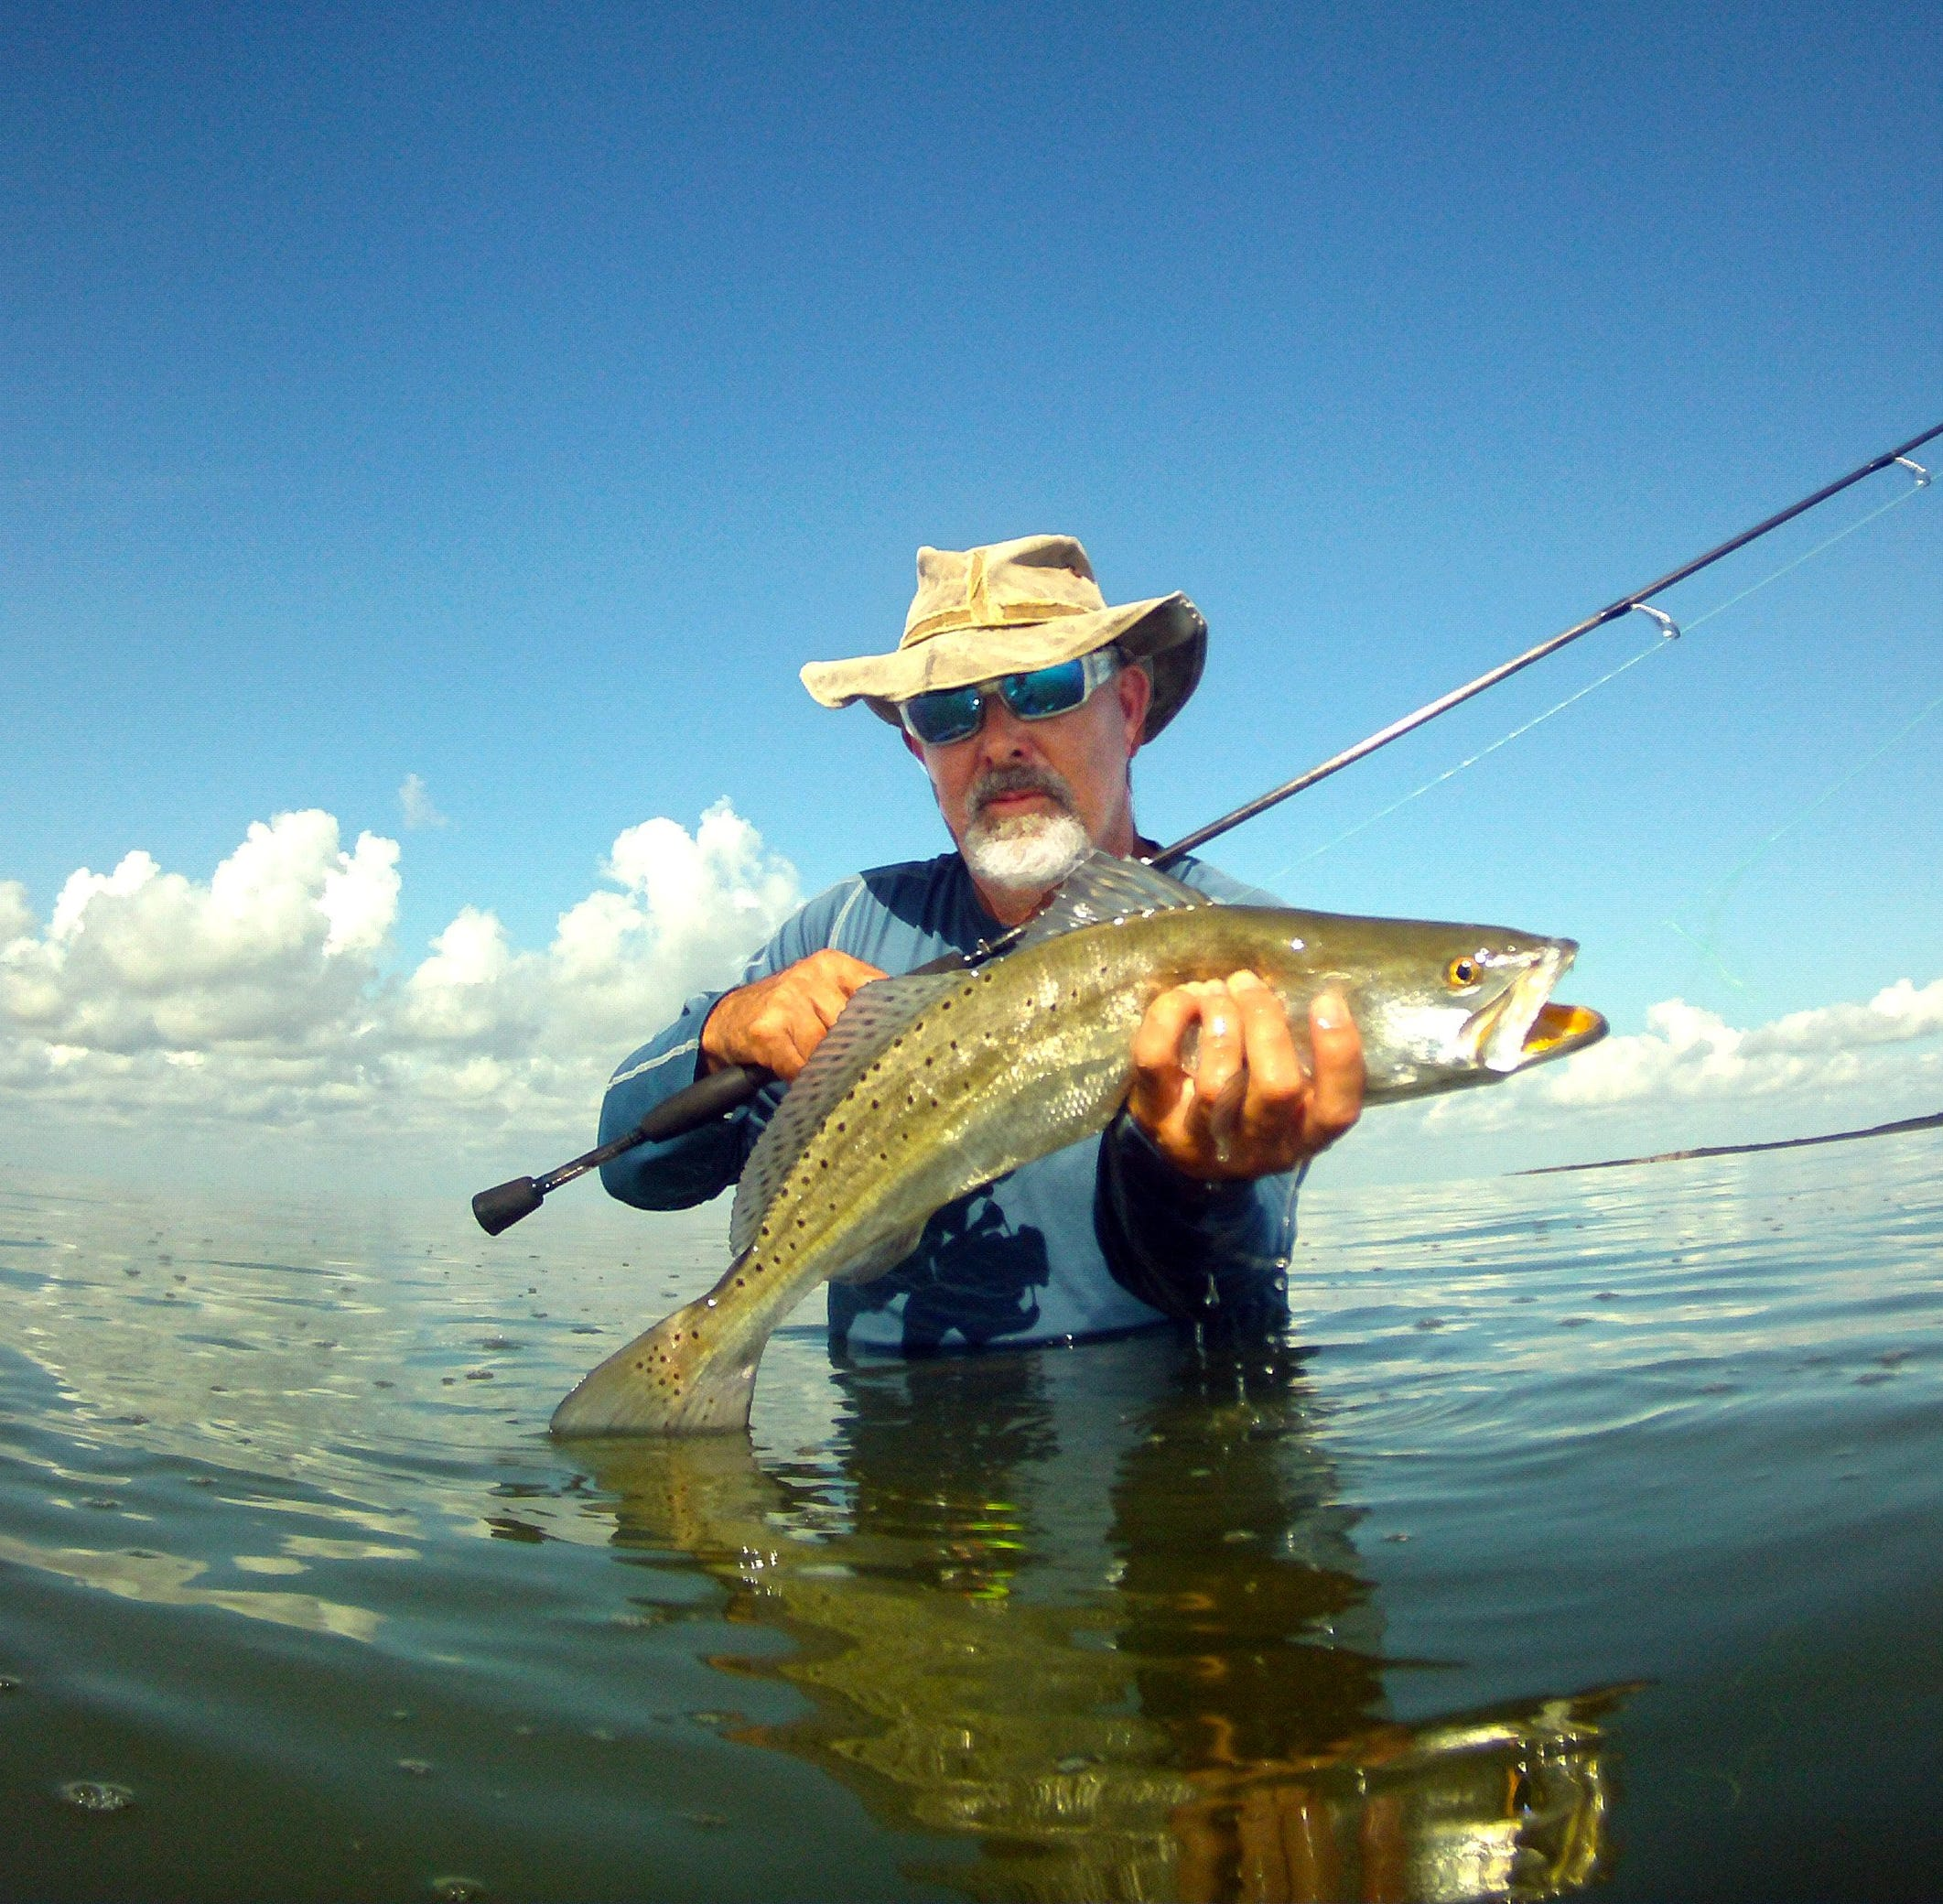 Here's what you should know about potential rule changes on speckled trout bag limits